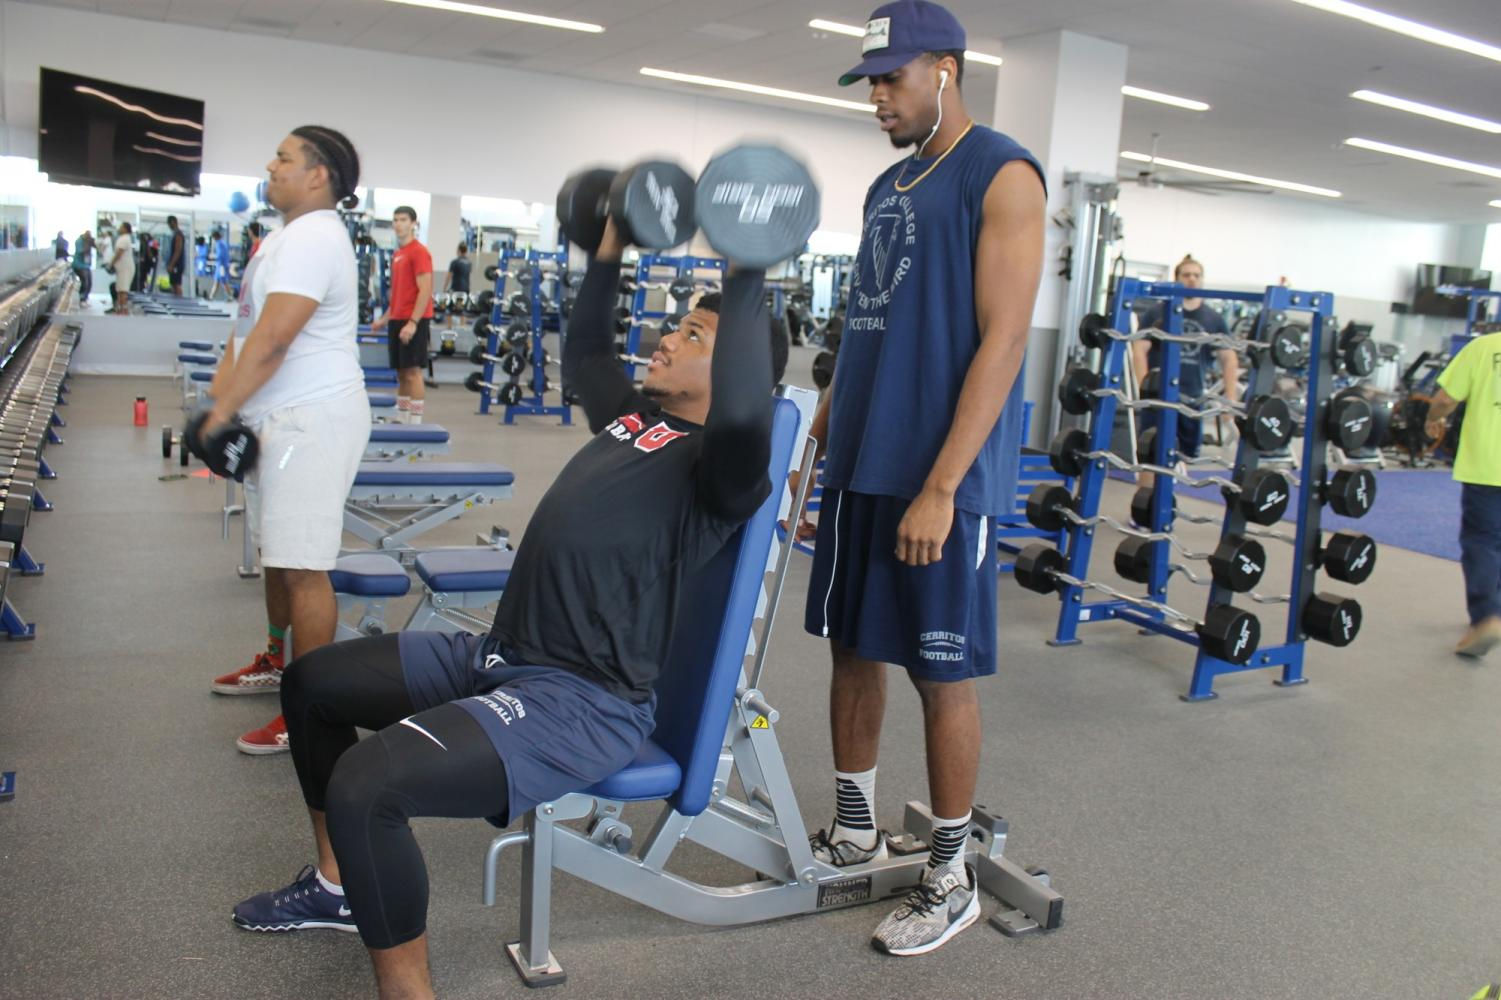 Cerritos College running back Carl Odom gets a shoulder press lift in the new weight room facility.